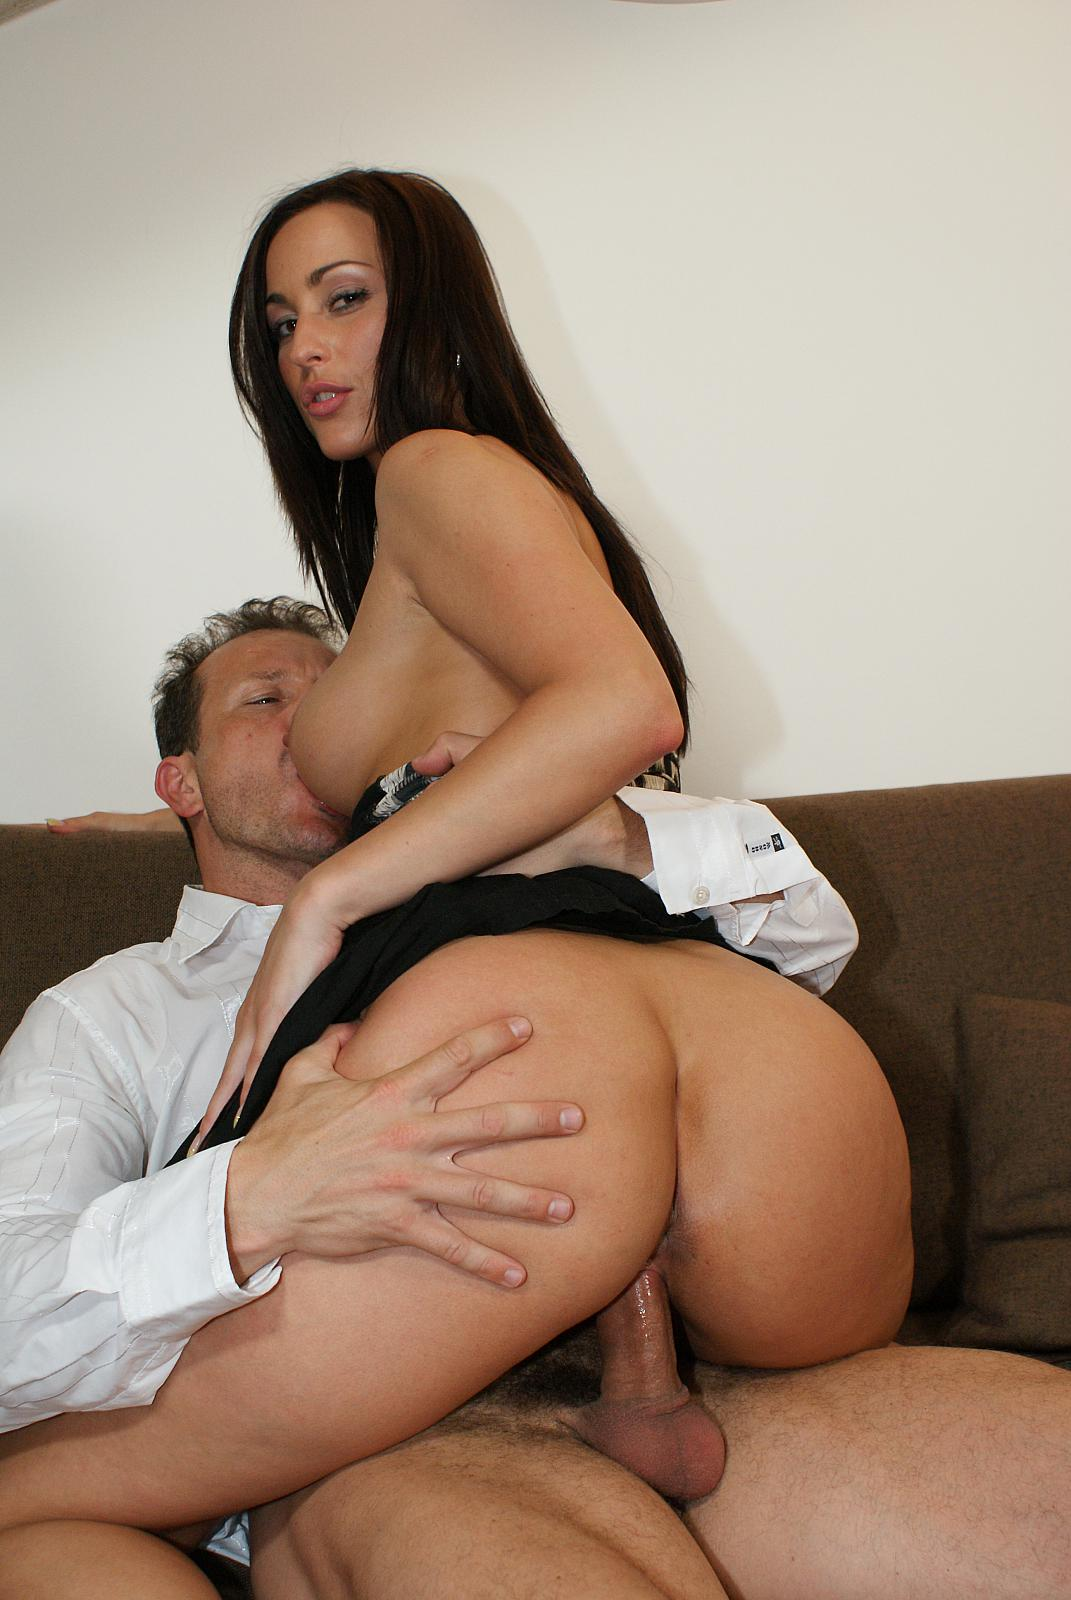 Euro babe simone style found a fucking solution to her problem